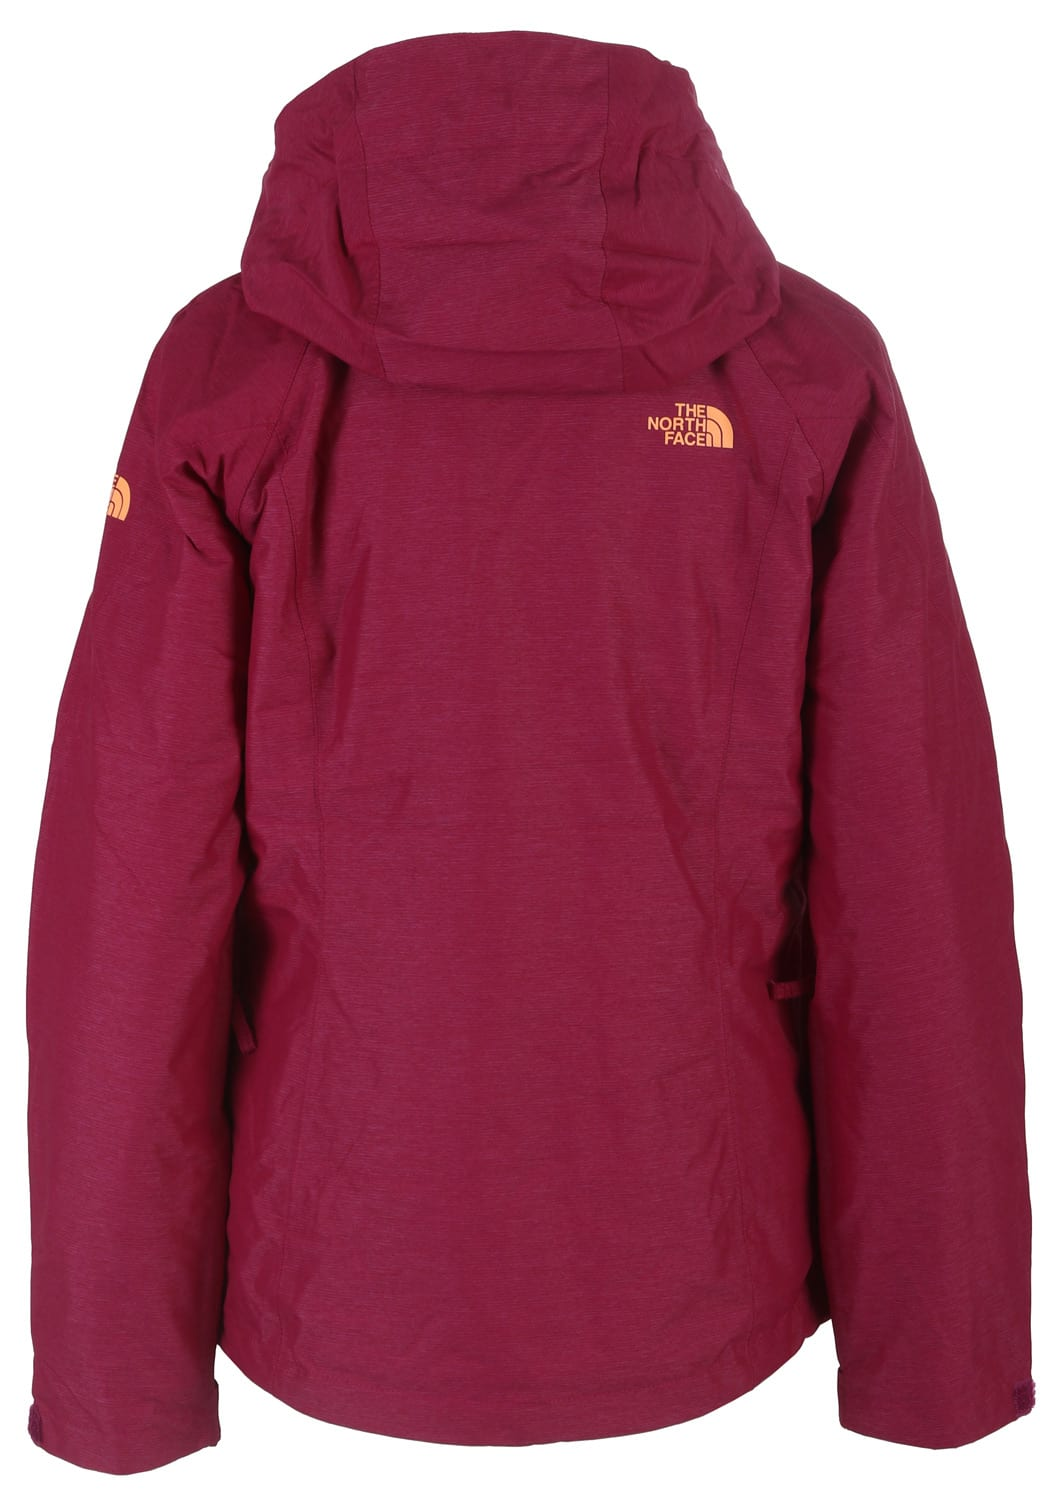 The North Face Cheakamus Triclimate Ski Jacket Womens